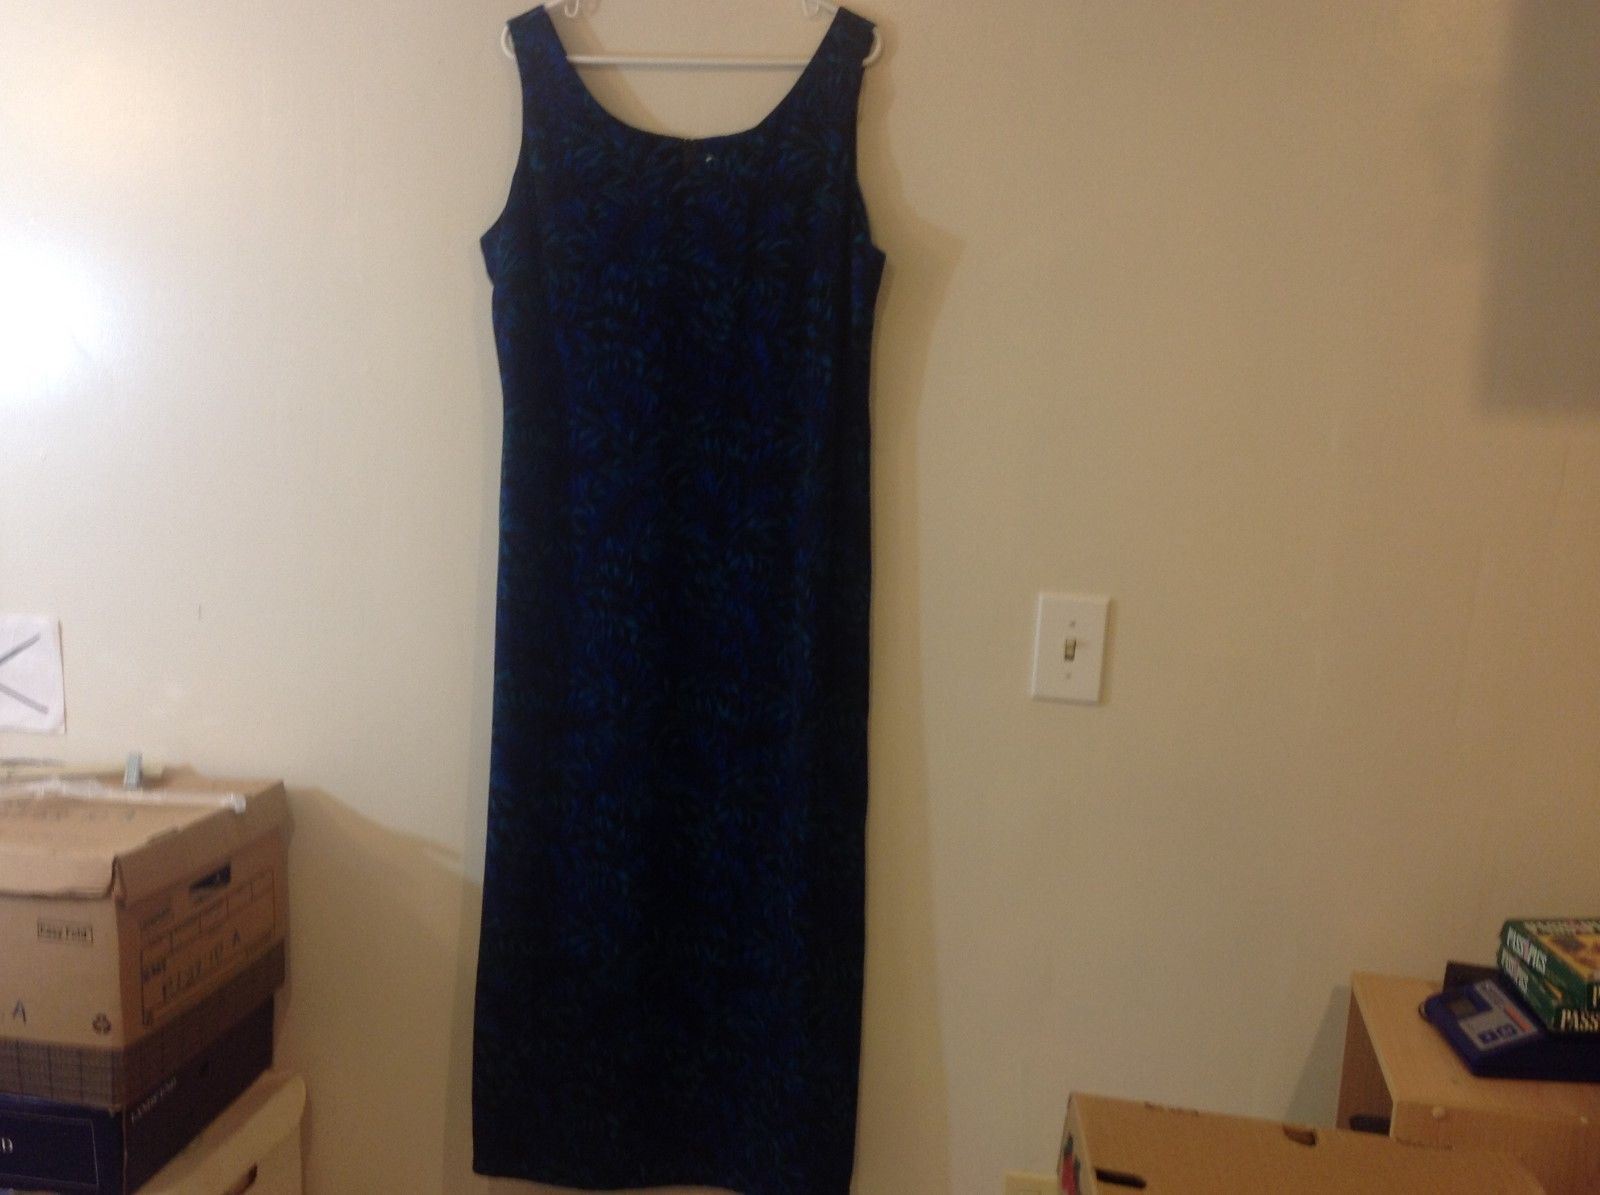 Studio I Black Sleeveless Dress w Blue/Teal Foliage Pattern Sz 18